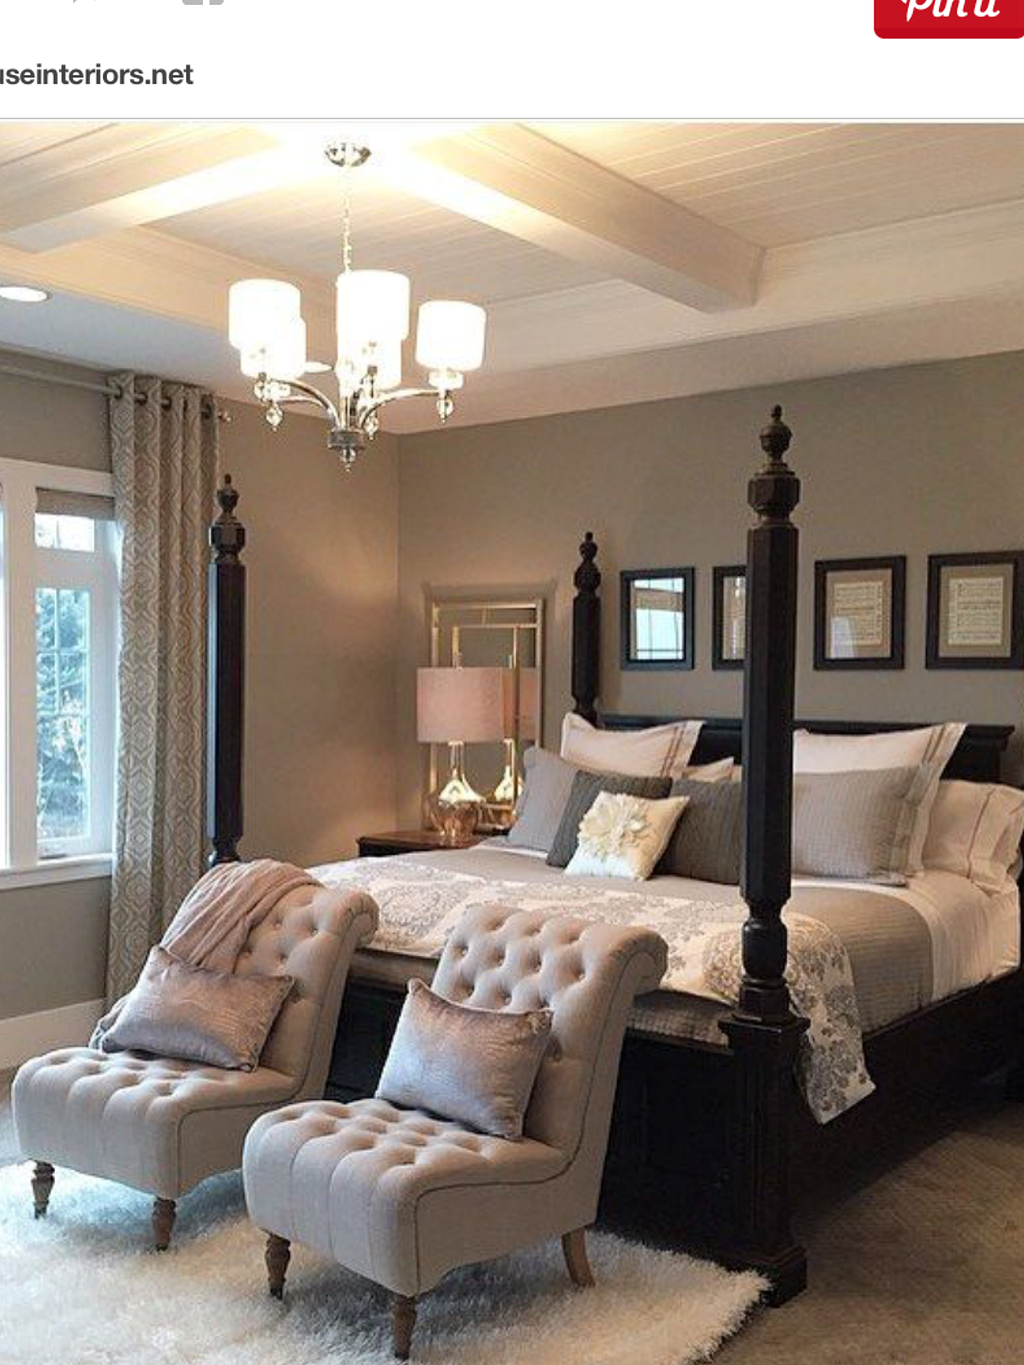 44 Romantic and Modern Master Bedroom Inspiration